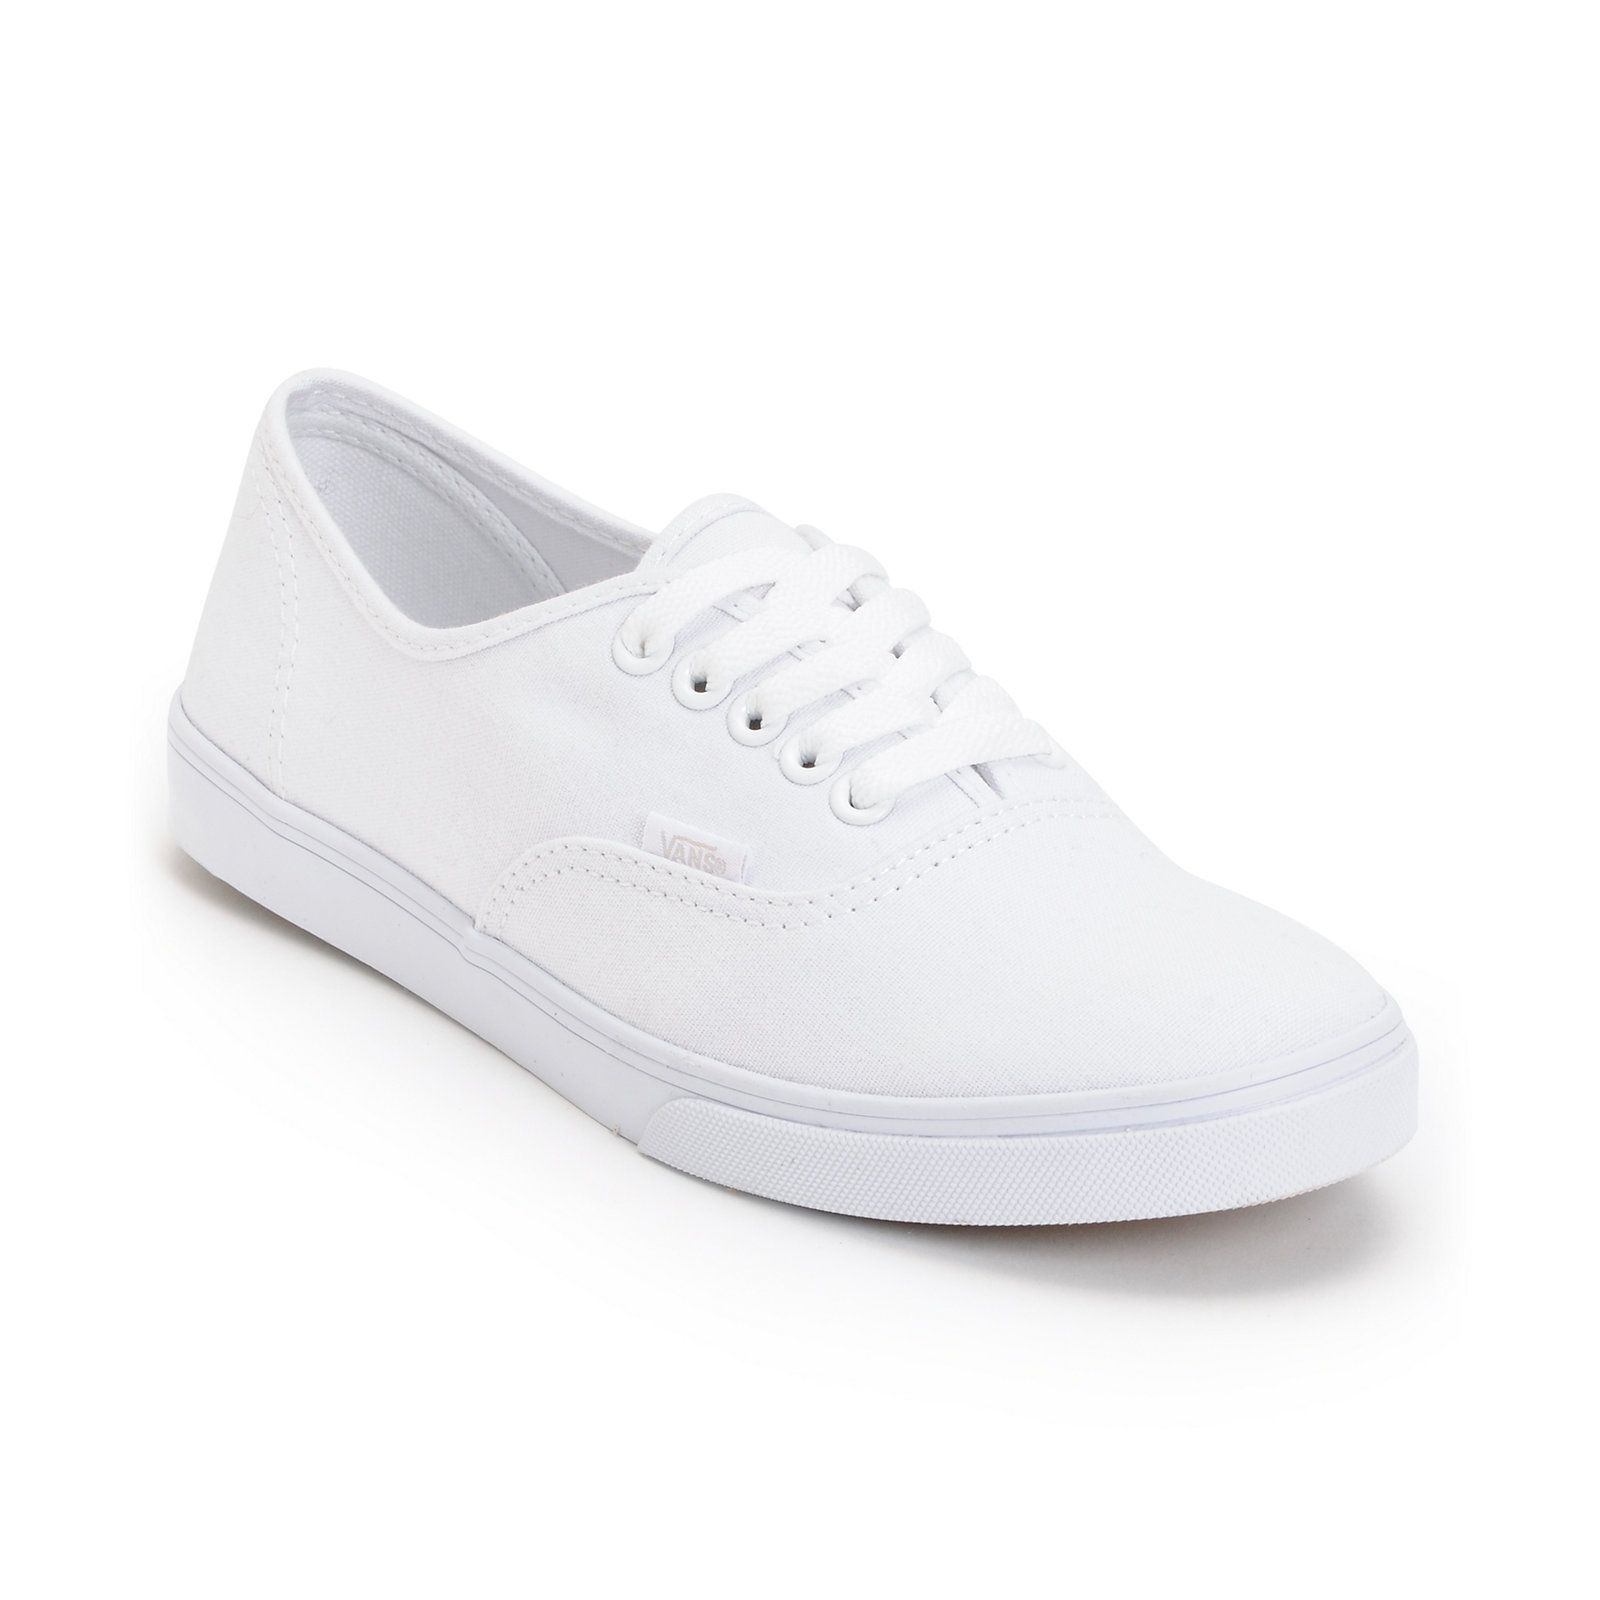 I really want a pair of white vans and have someone draw on